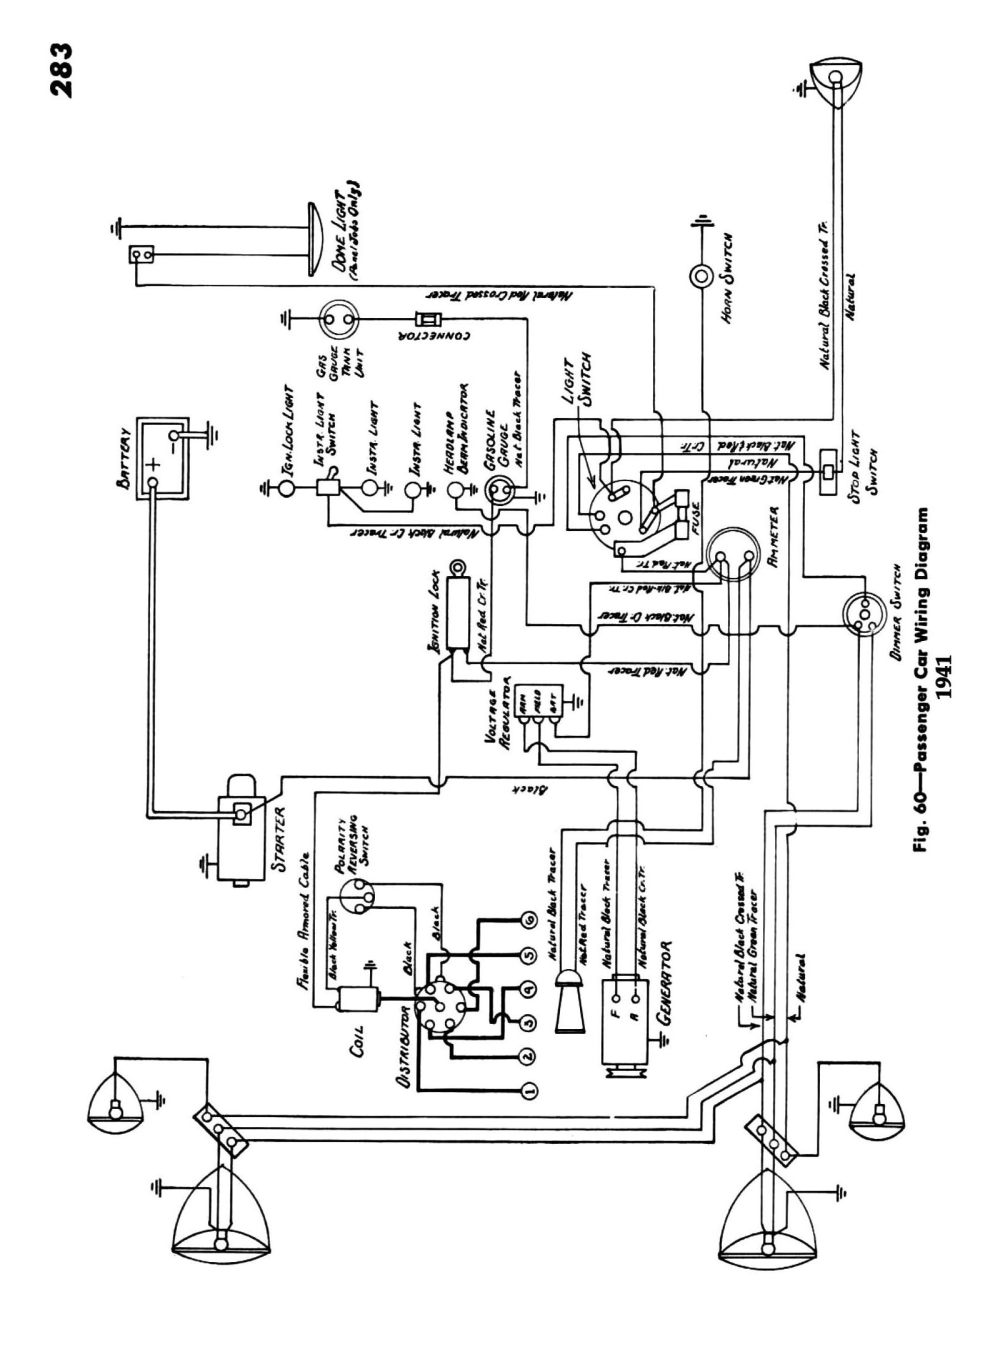 medium resolution of 1941 chrysler ignition switch wiring wiring library 1941 chrysler ignition switch wiring